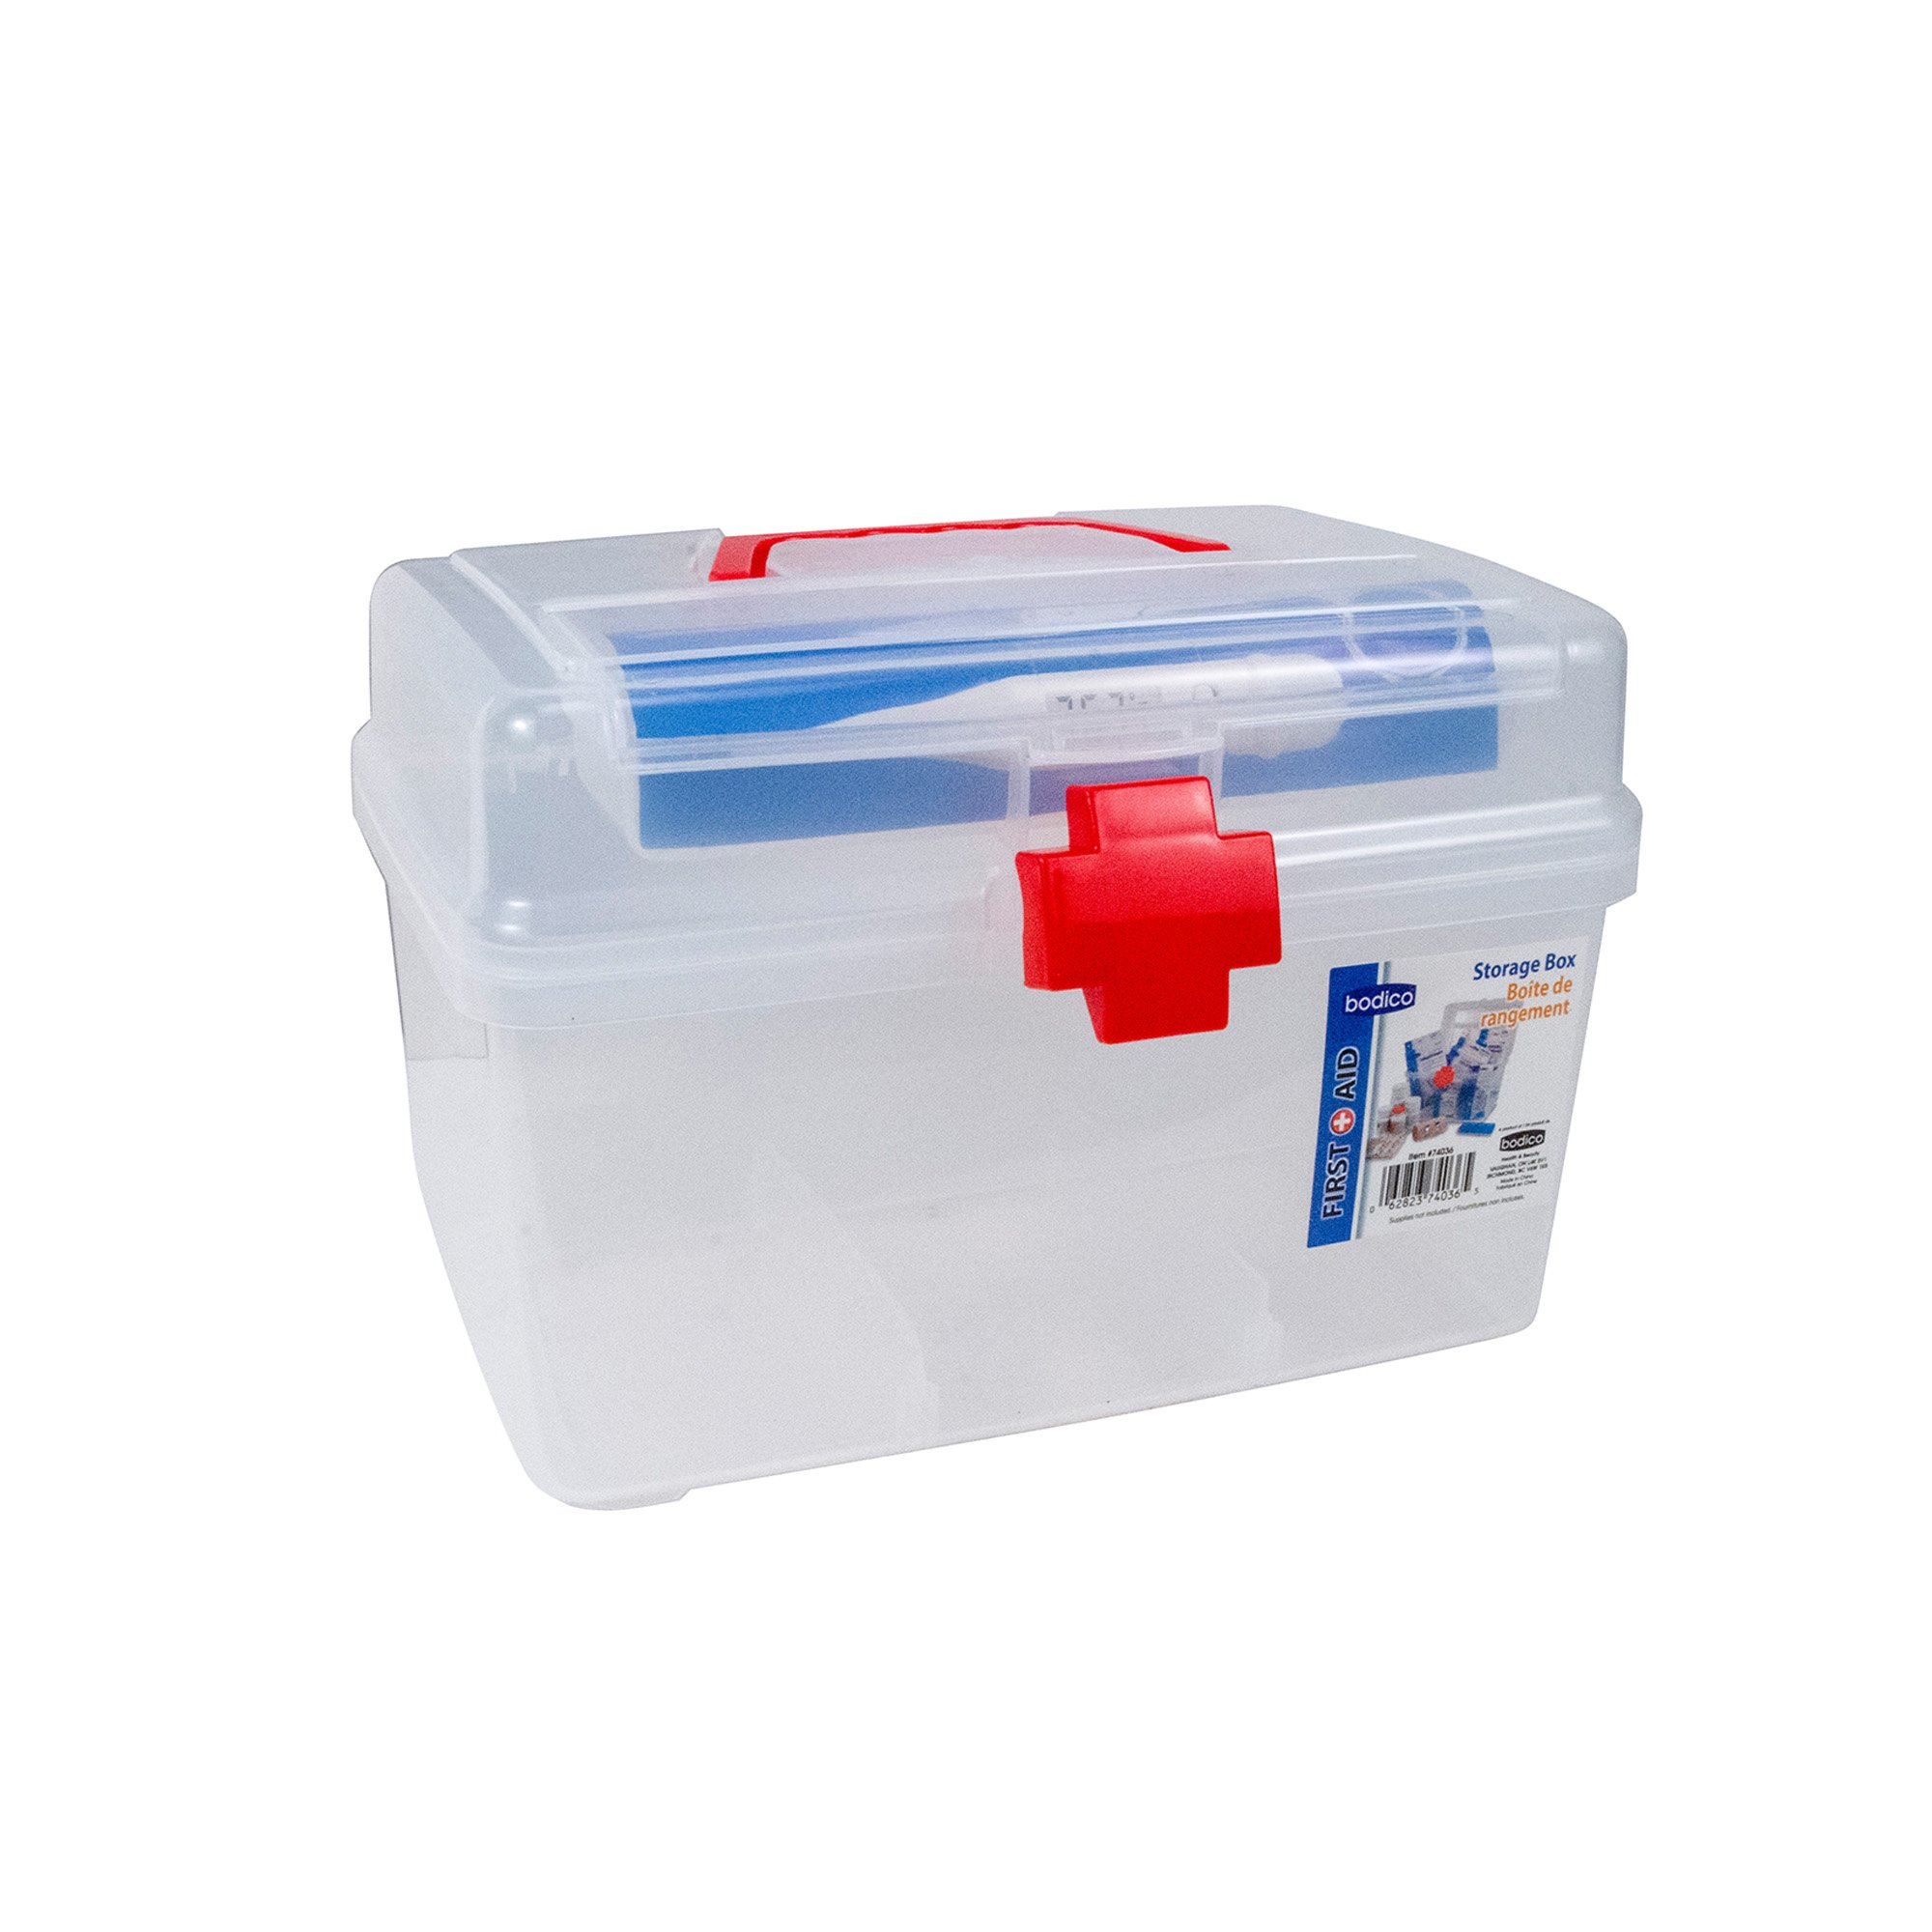 Bodico First Aid Medical Storage, 11 inches, Red